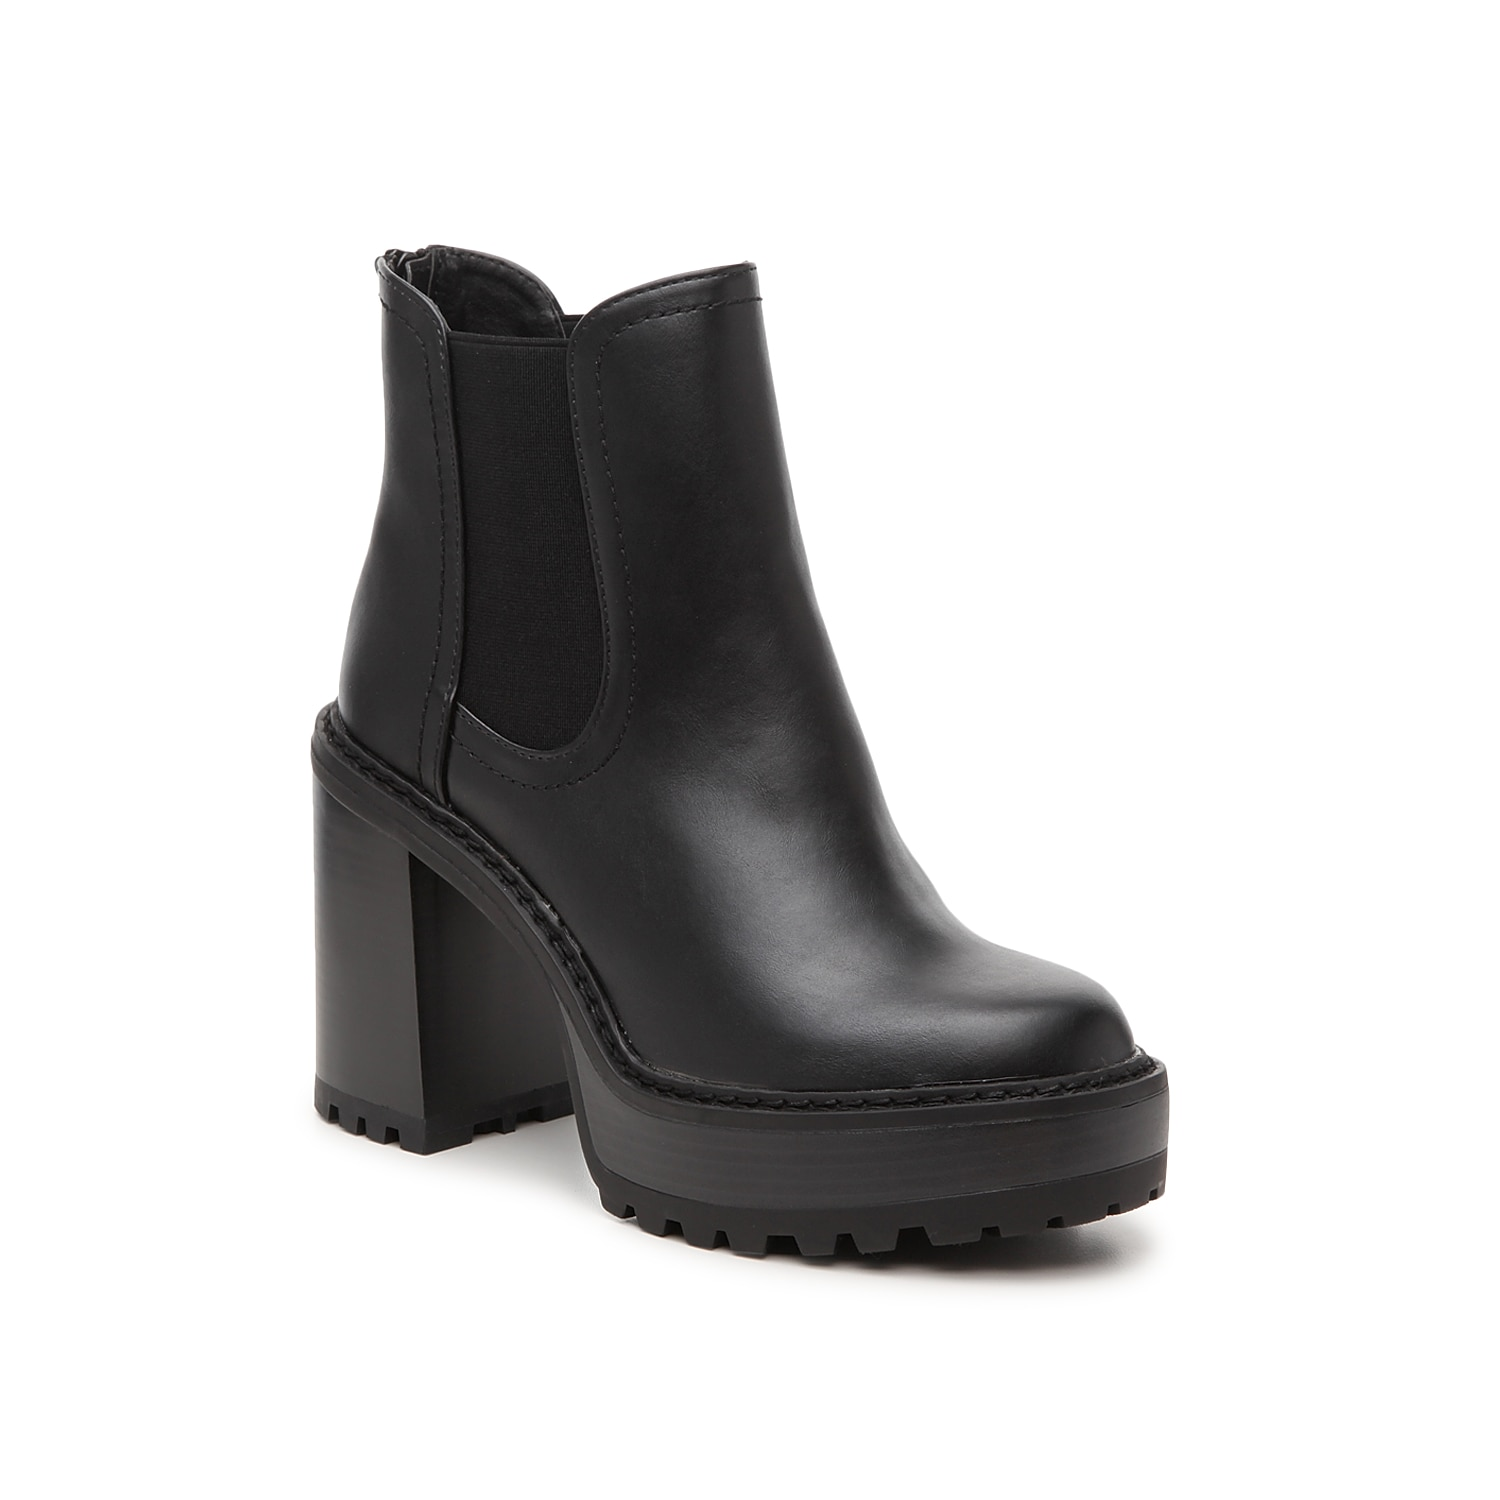 Add some edge to jeans or midi skirts with the Kamora platform bootie from Madden Girl. This Chelsea boot features an extra chunky block heel and lug sole for rugged appeal.